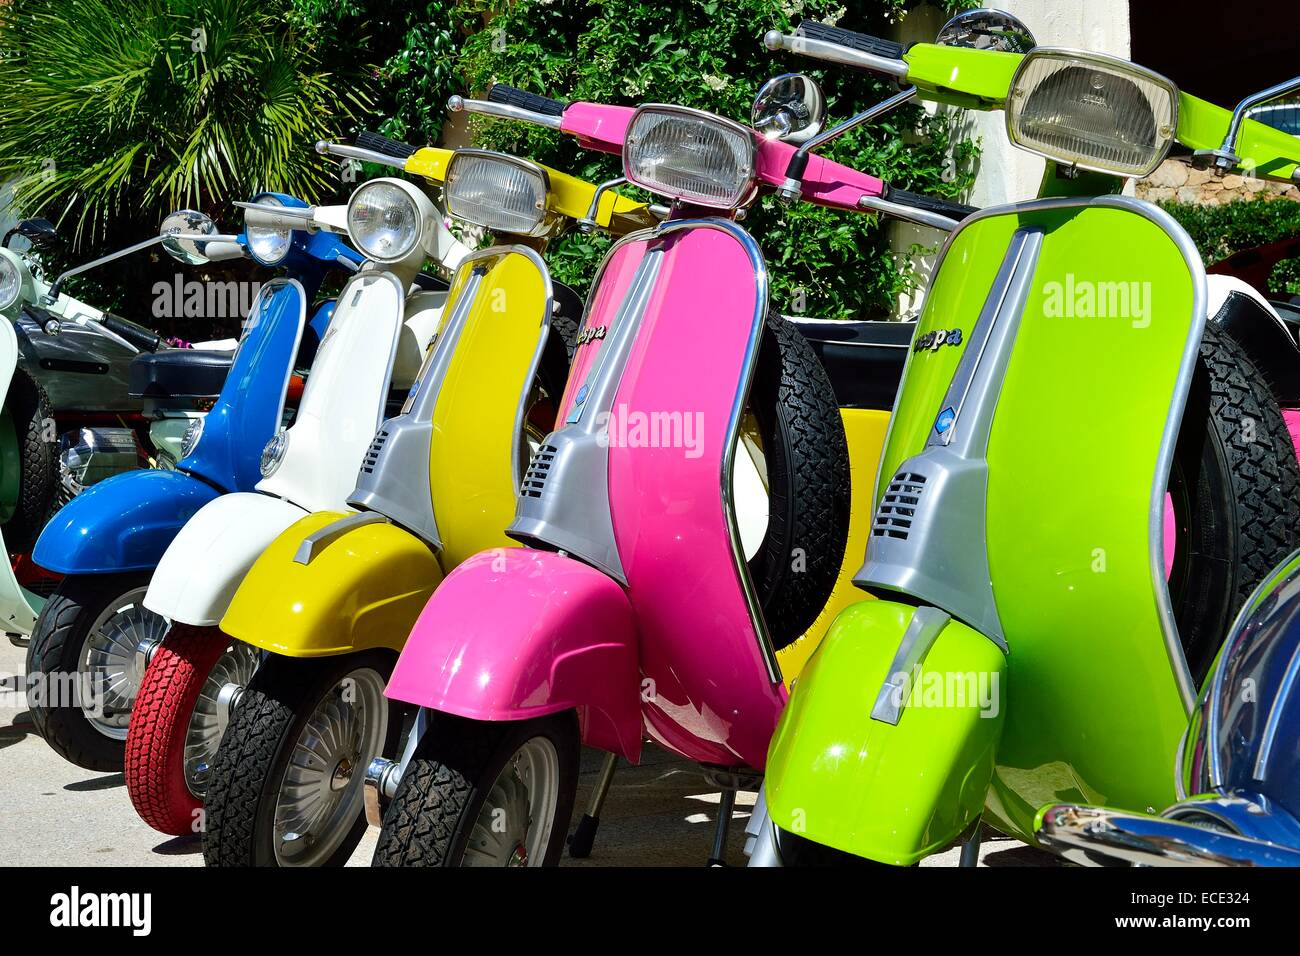 Colourful Vespa scooters, old and new models, Province of Olbia-Tempio, Sardinia, Italy - Stock Image